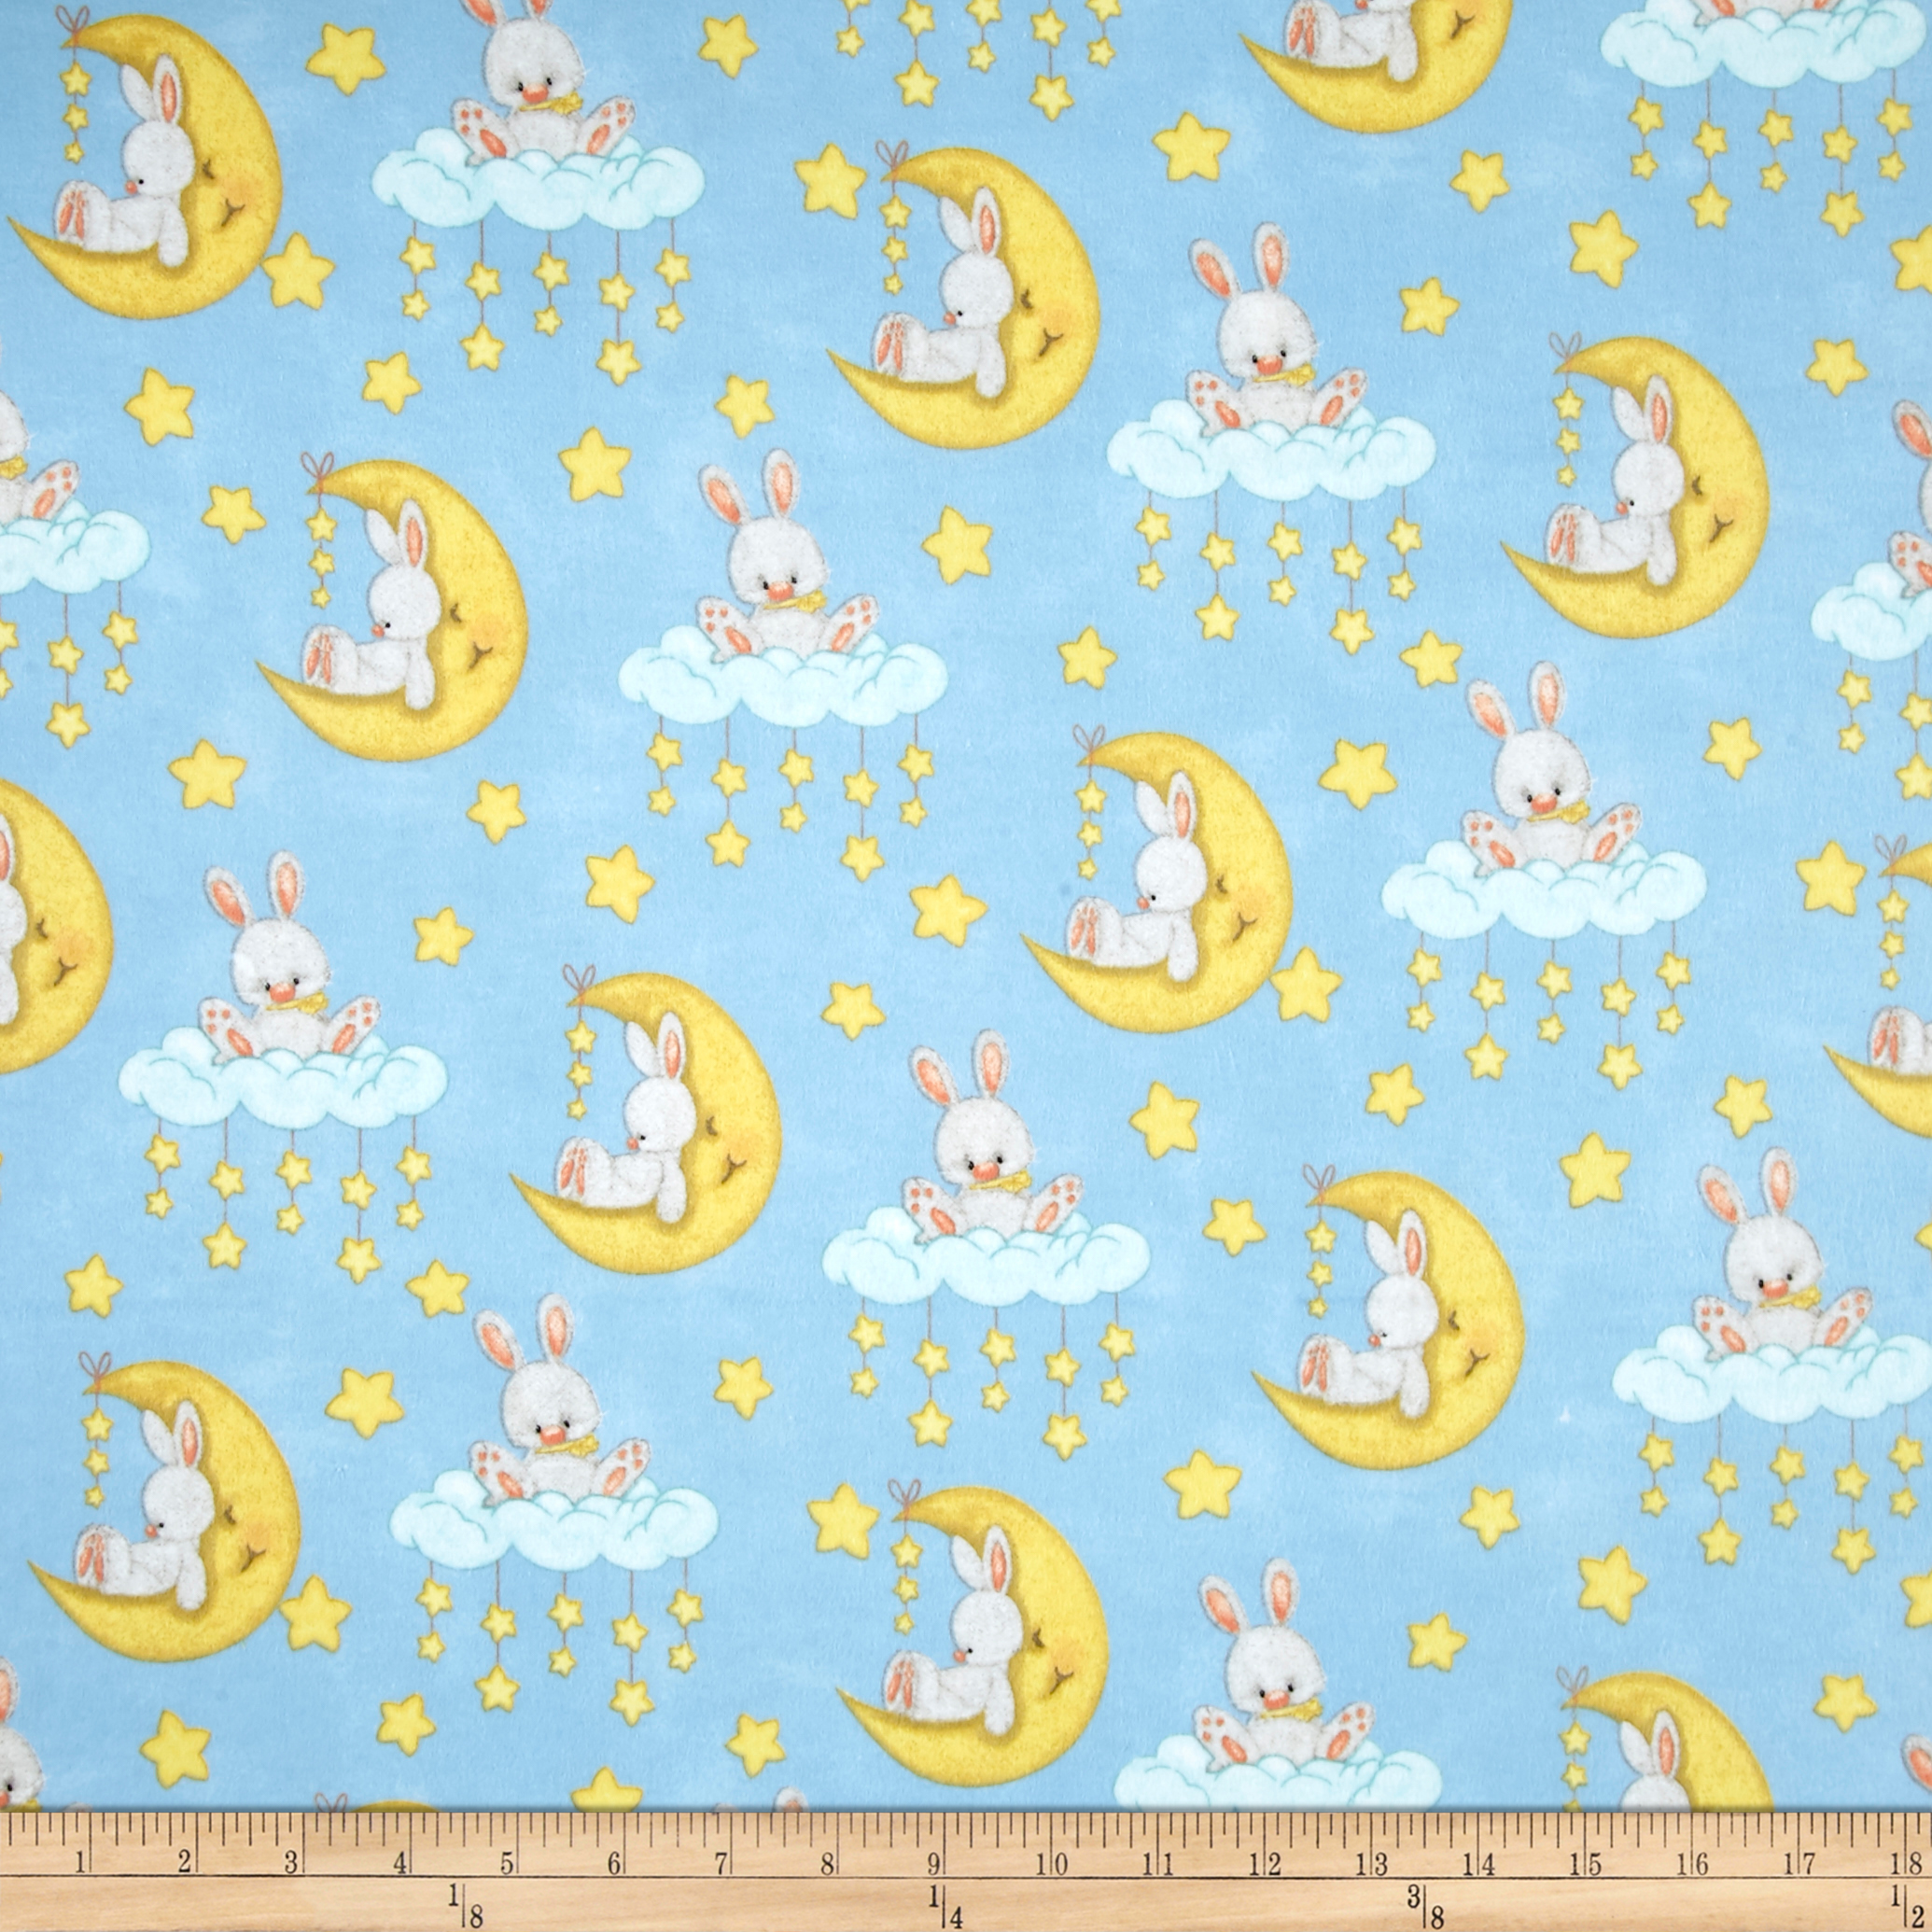 Comfy Flannel Bunny On Moon Multi Fabric by A. E. Nathan in USA